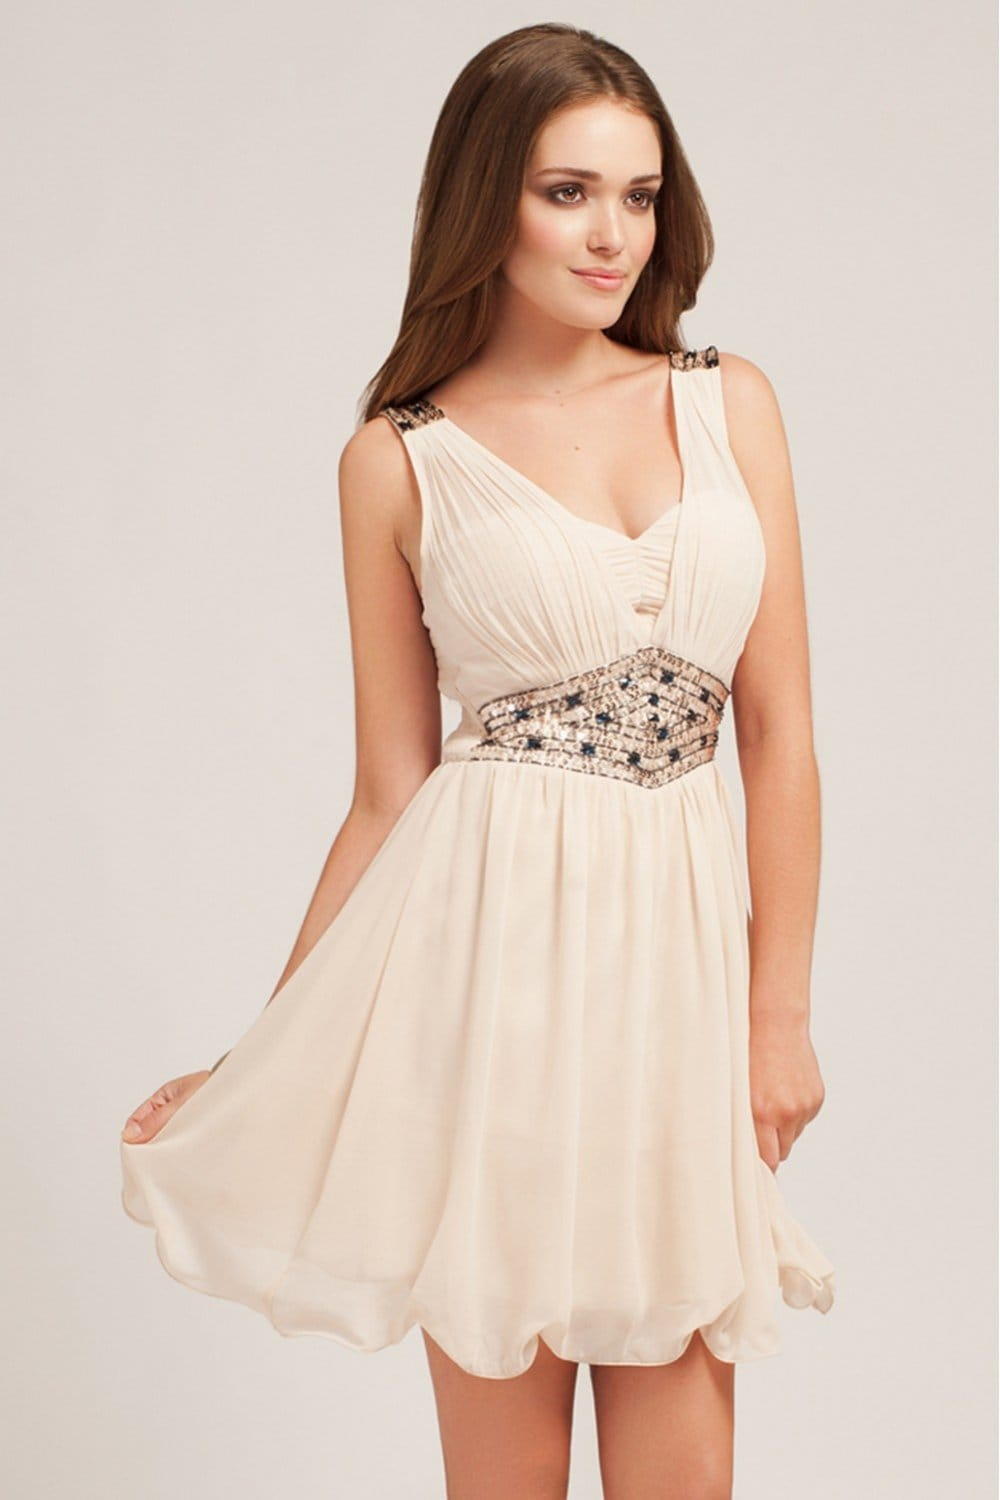 Find cream chiffon dress at ShopStyle. Shop the latest collection of cream chiffon dress from the most popular stores - all in one place.